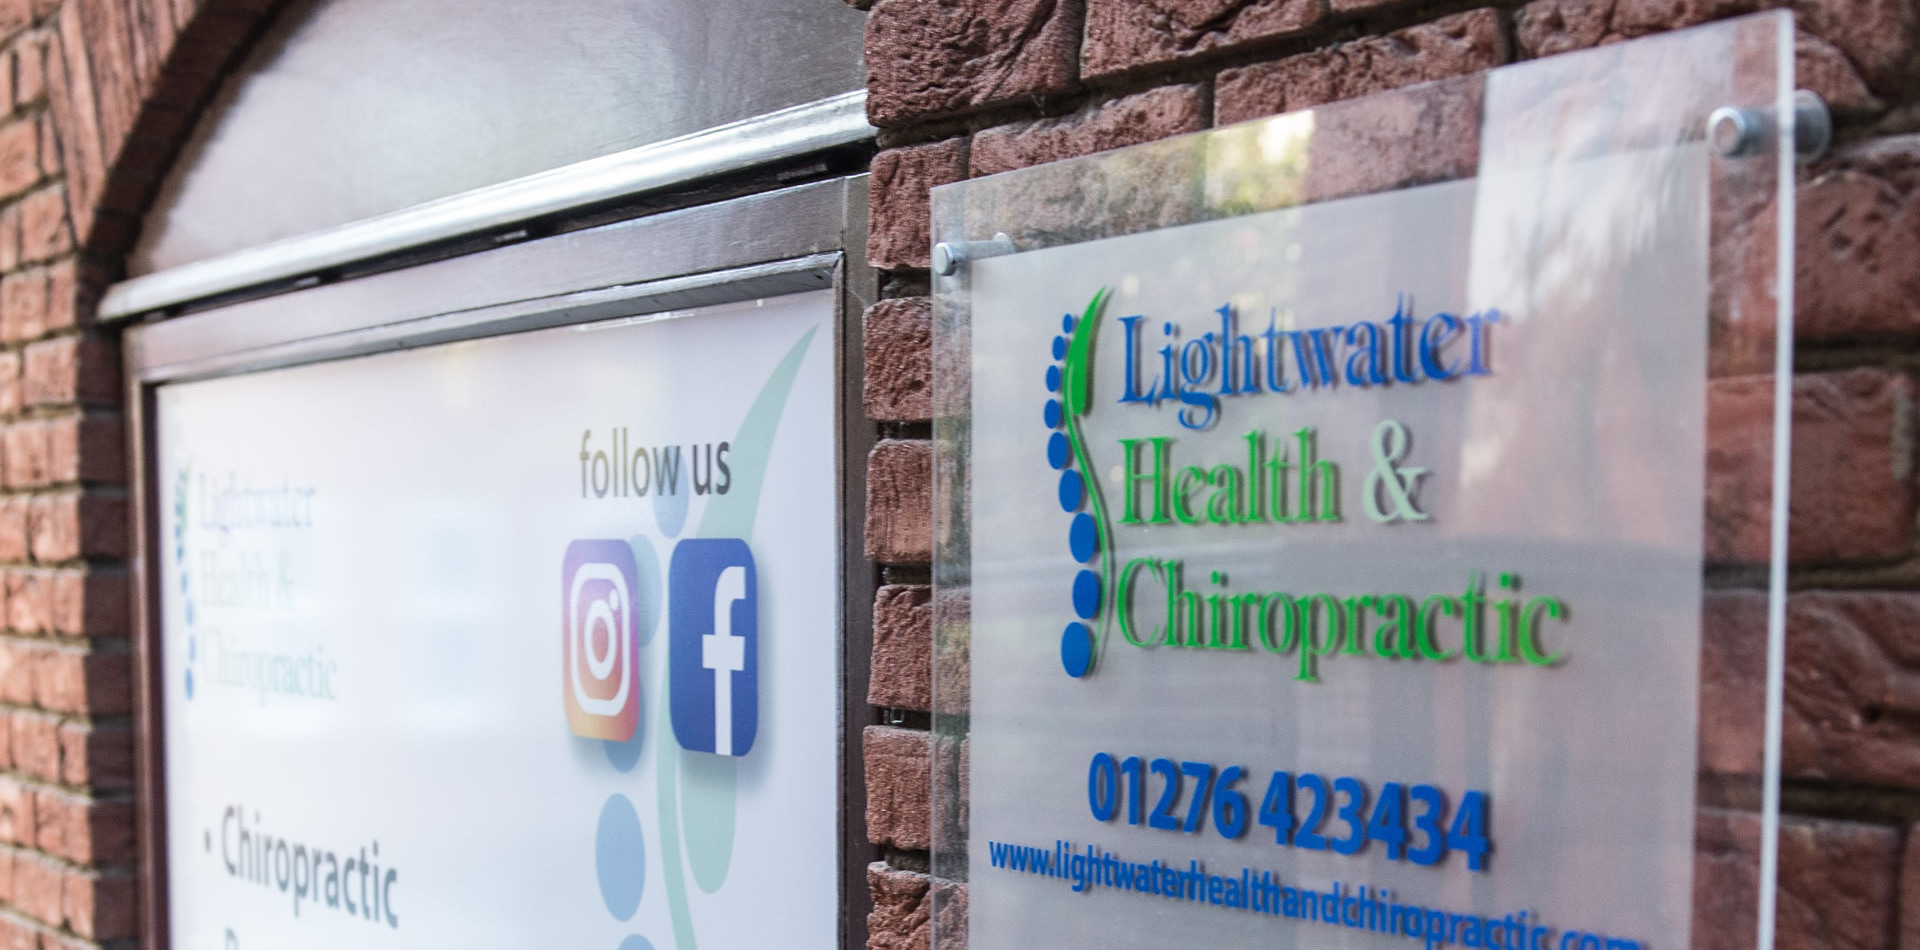 Contact Lightwater Health & Chiropractic